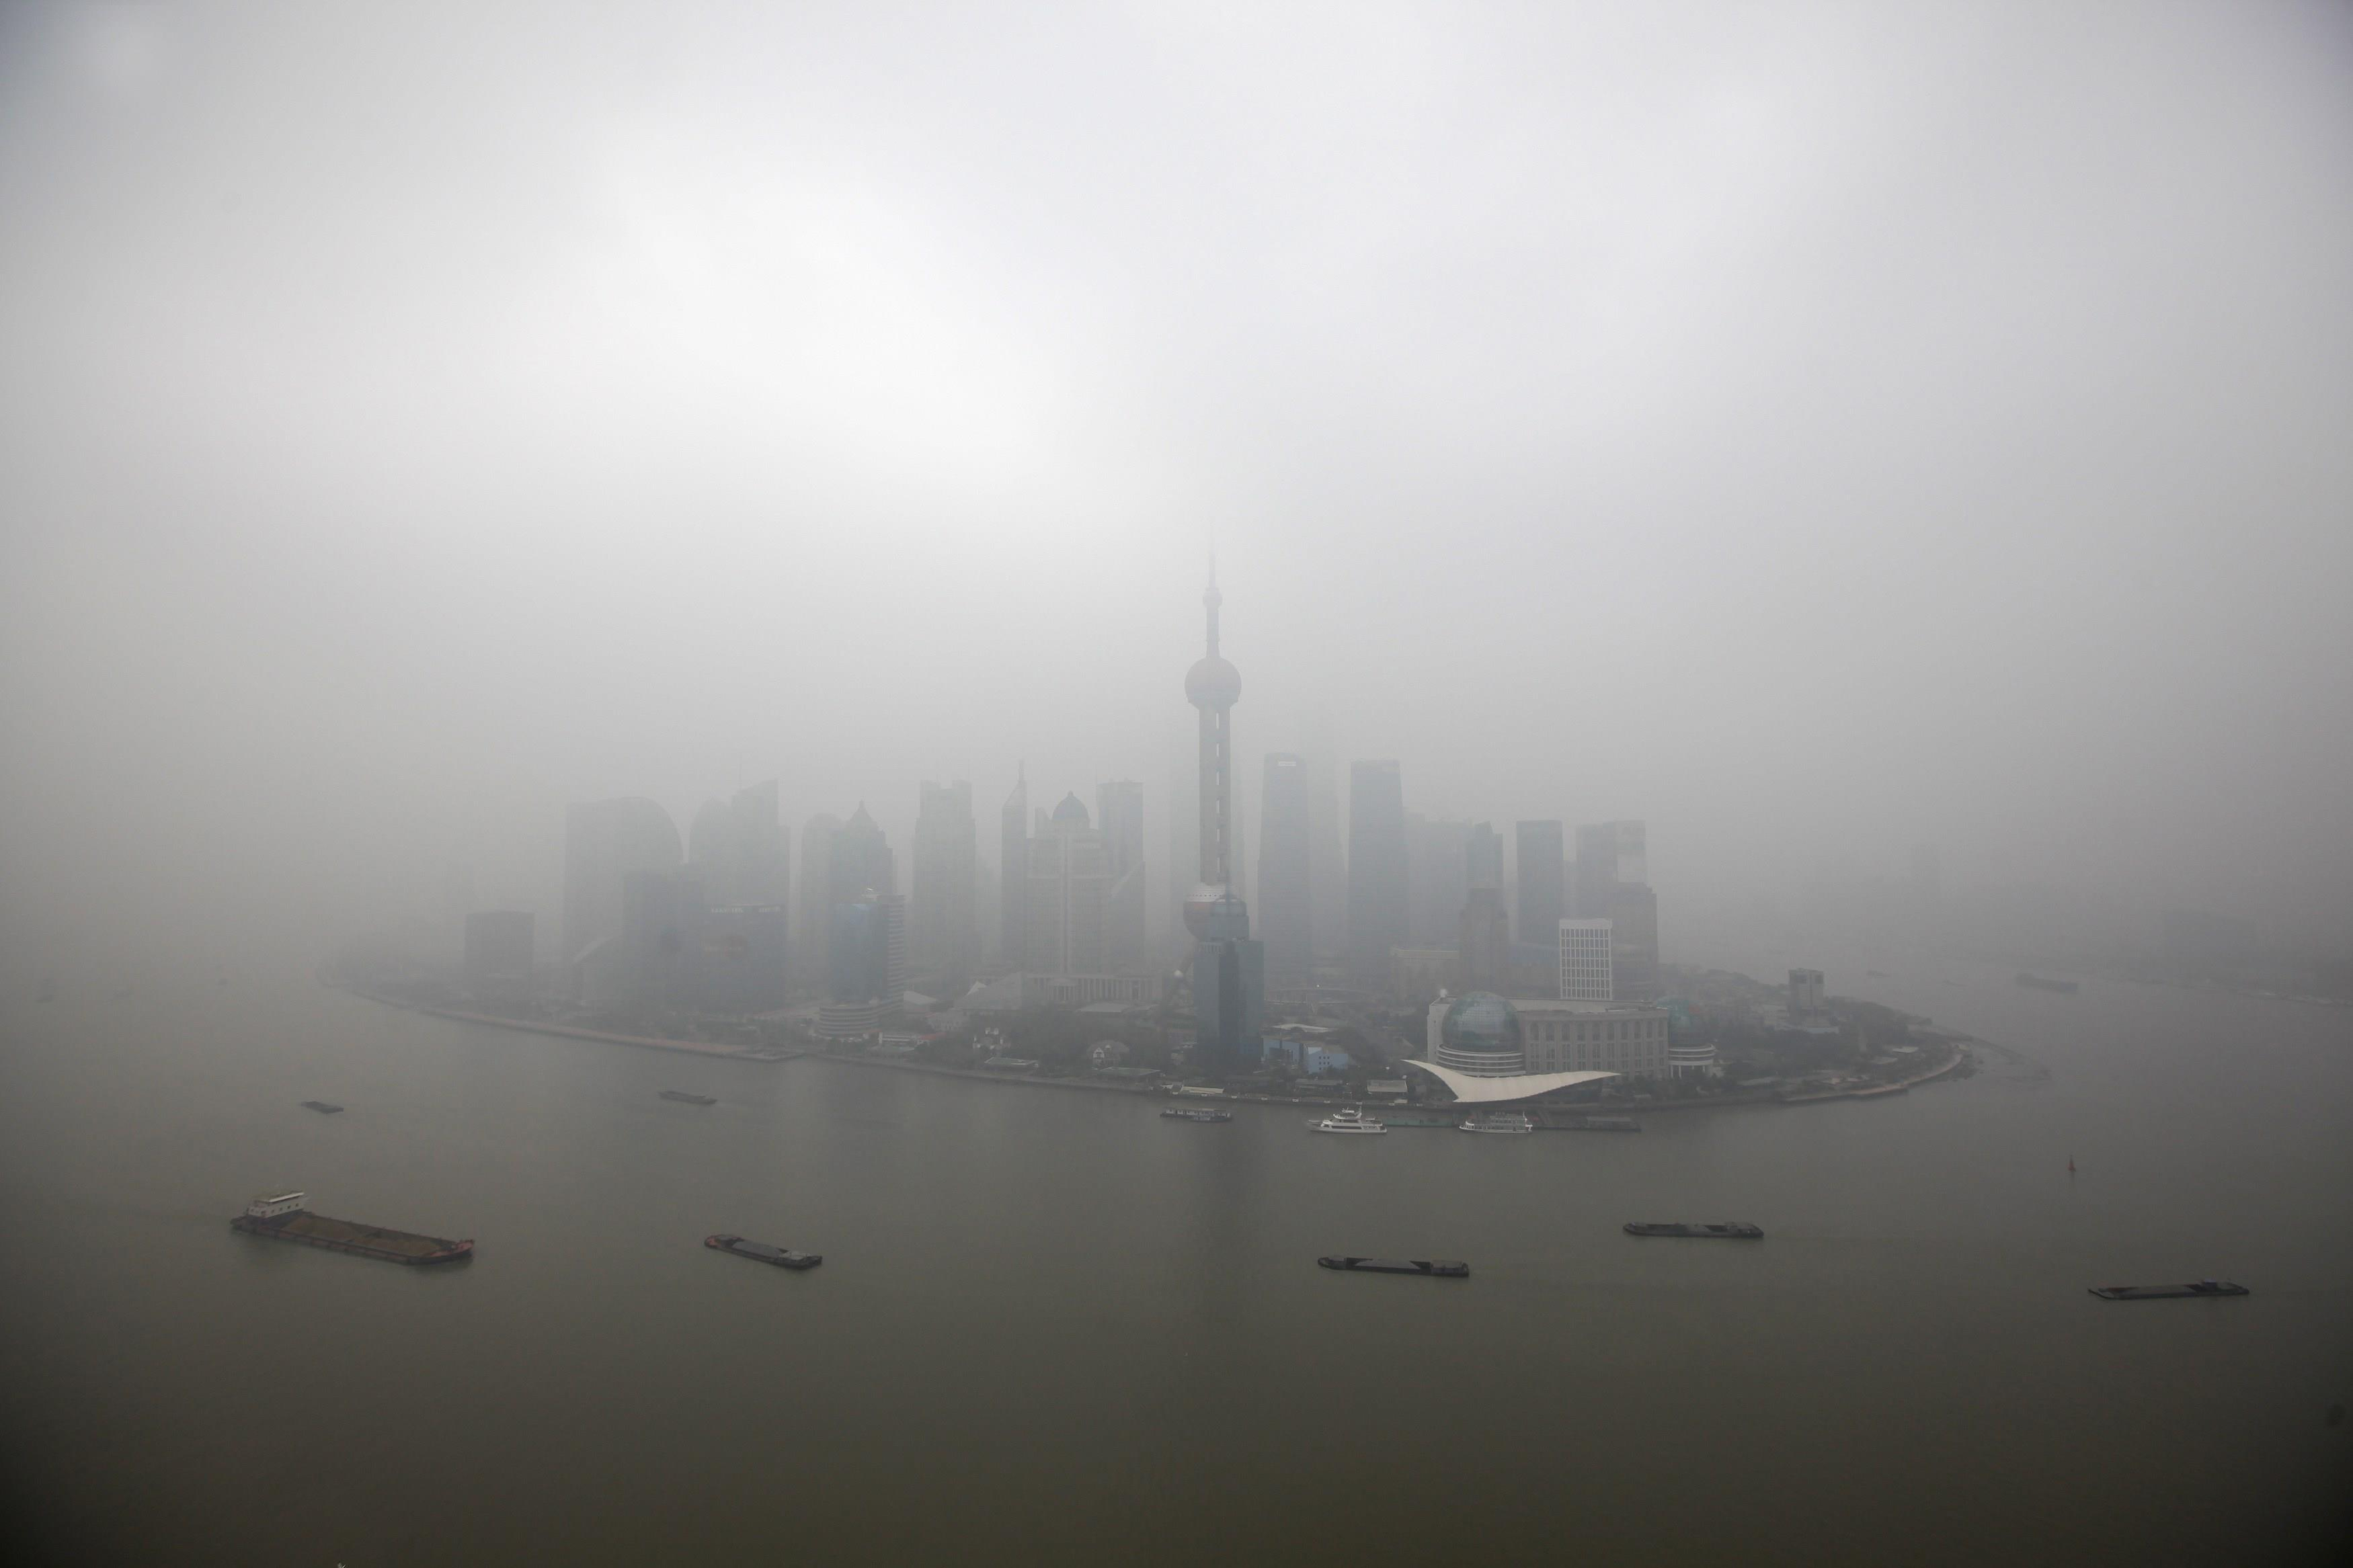 File picture shows the financial district of Pudong on a hazy day in Shanghai